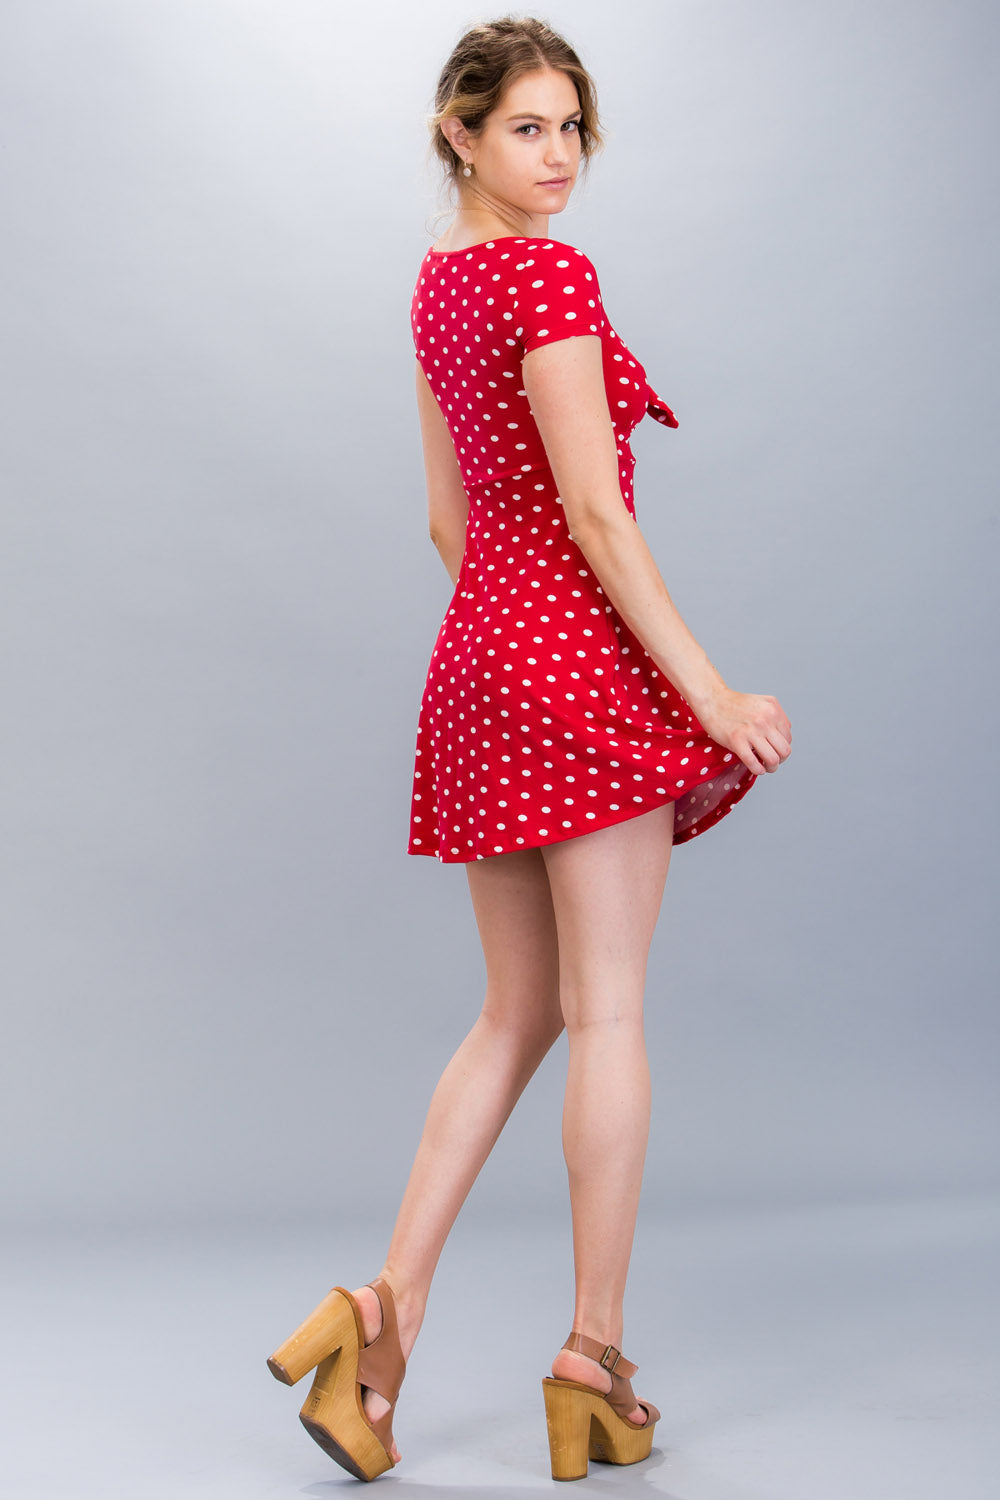 Dress - BD2276 - Capella Apparel